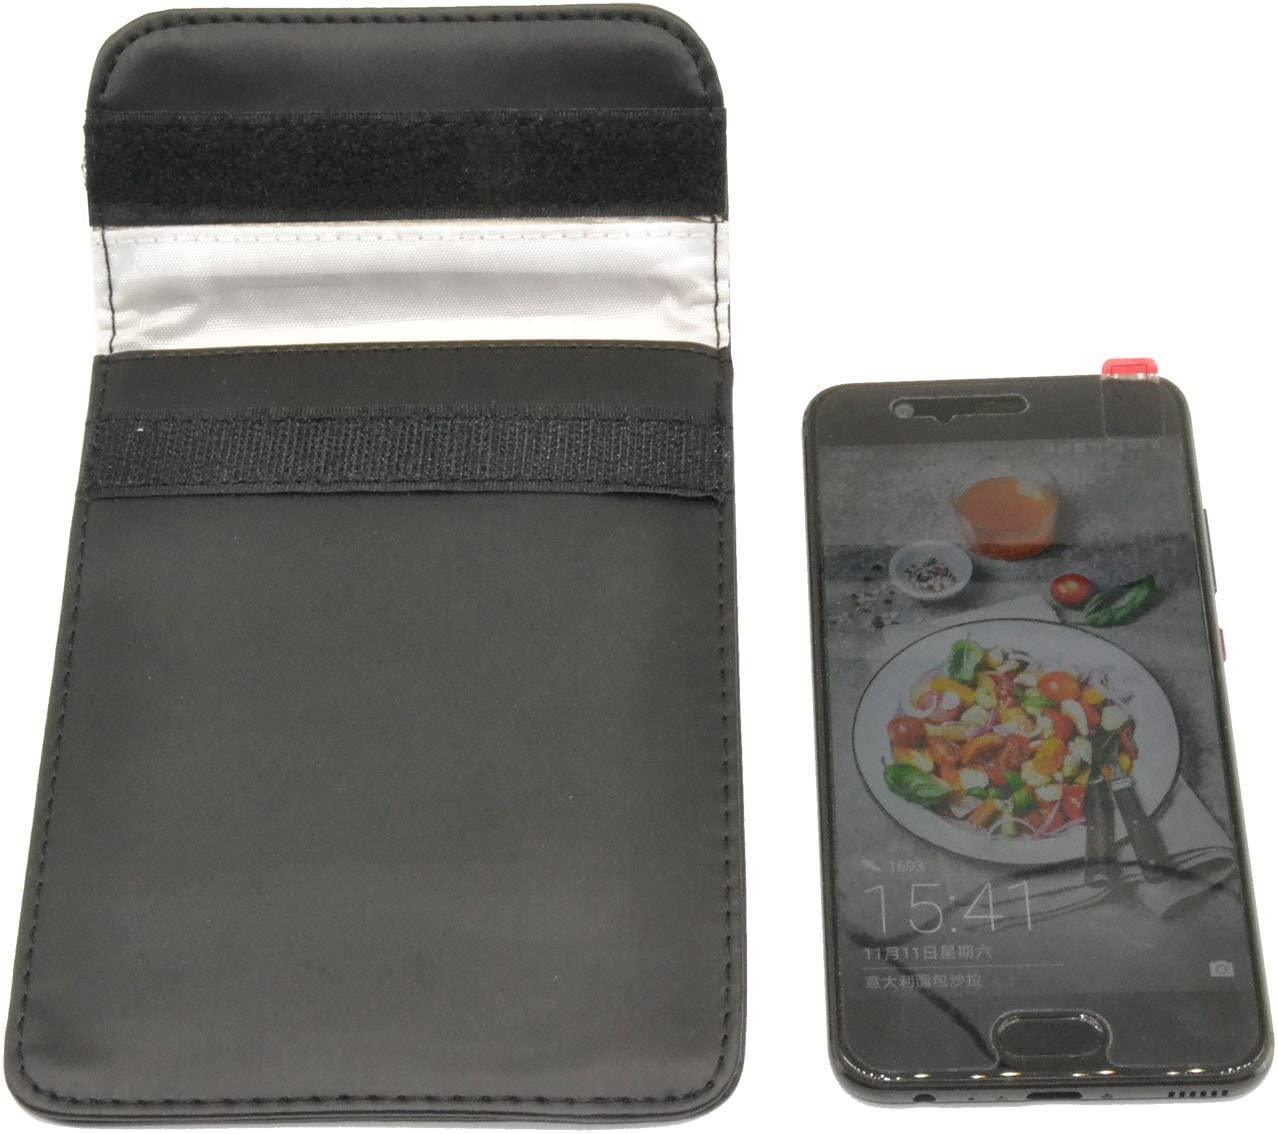 Mengshen RF Signal Blocker Anti-Radiation Shield Case Bag Pouch for 3-5 Inch Cell Phone, PX05 Black